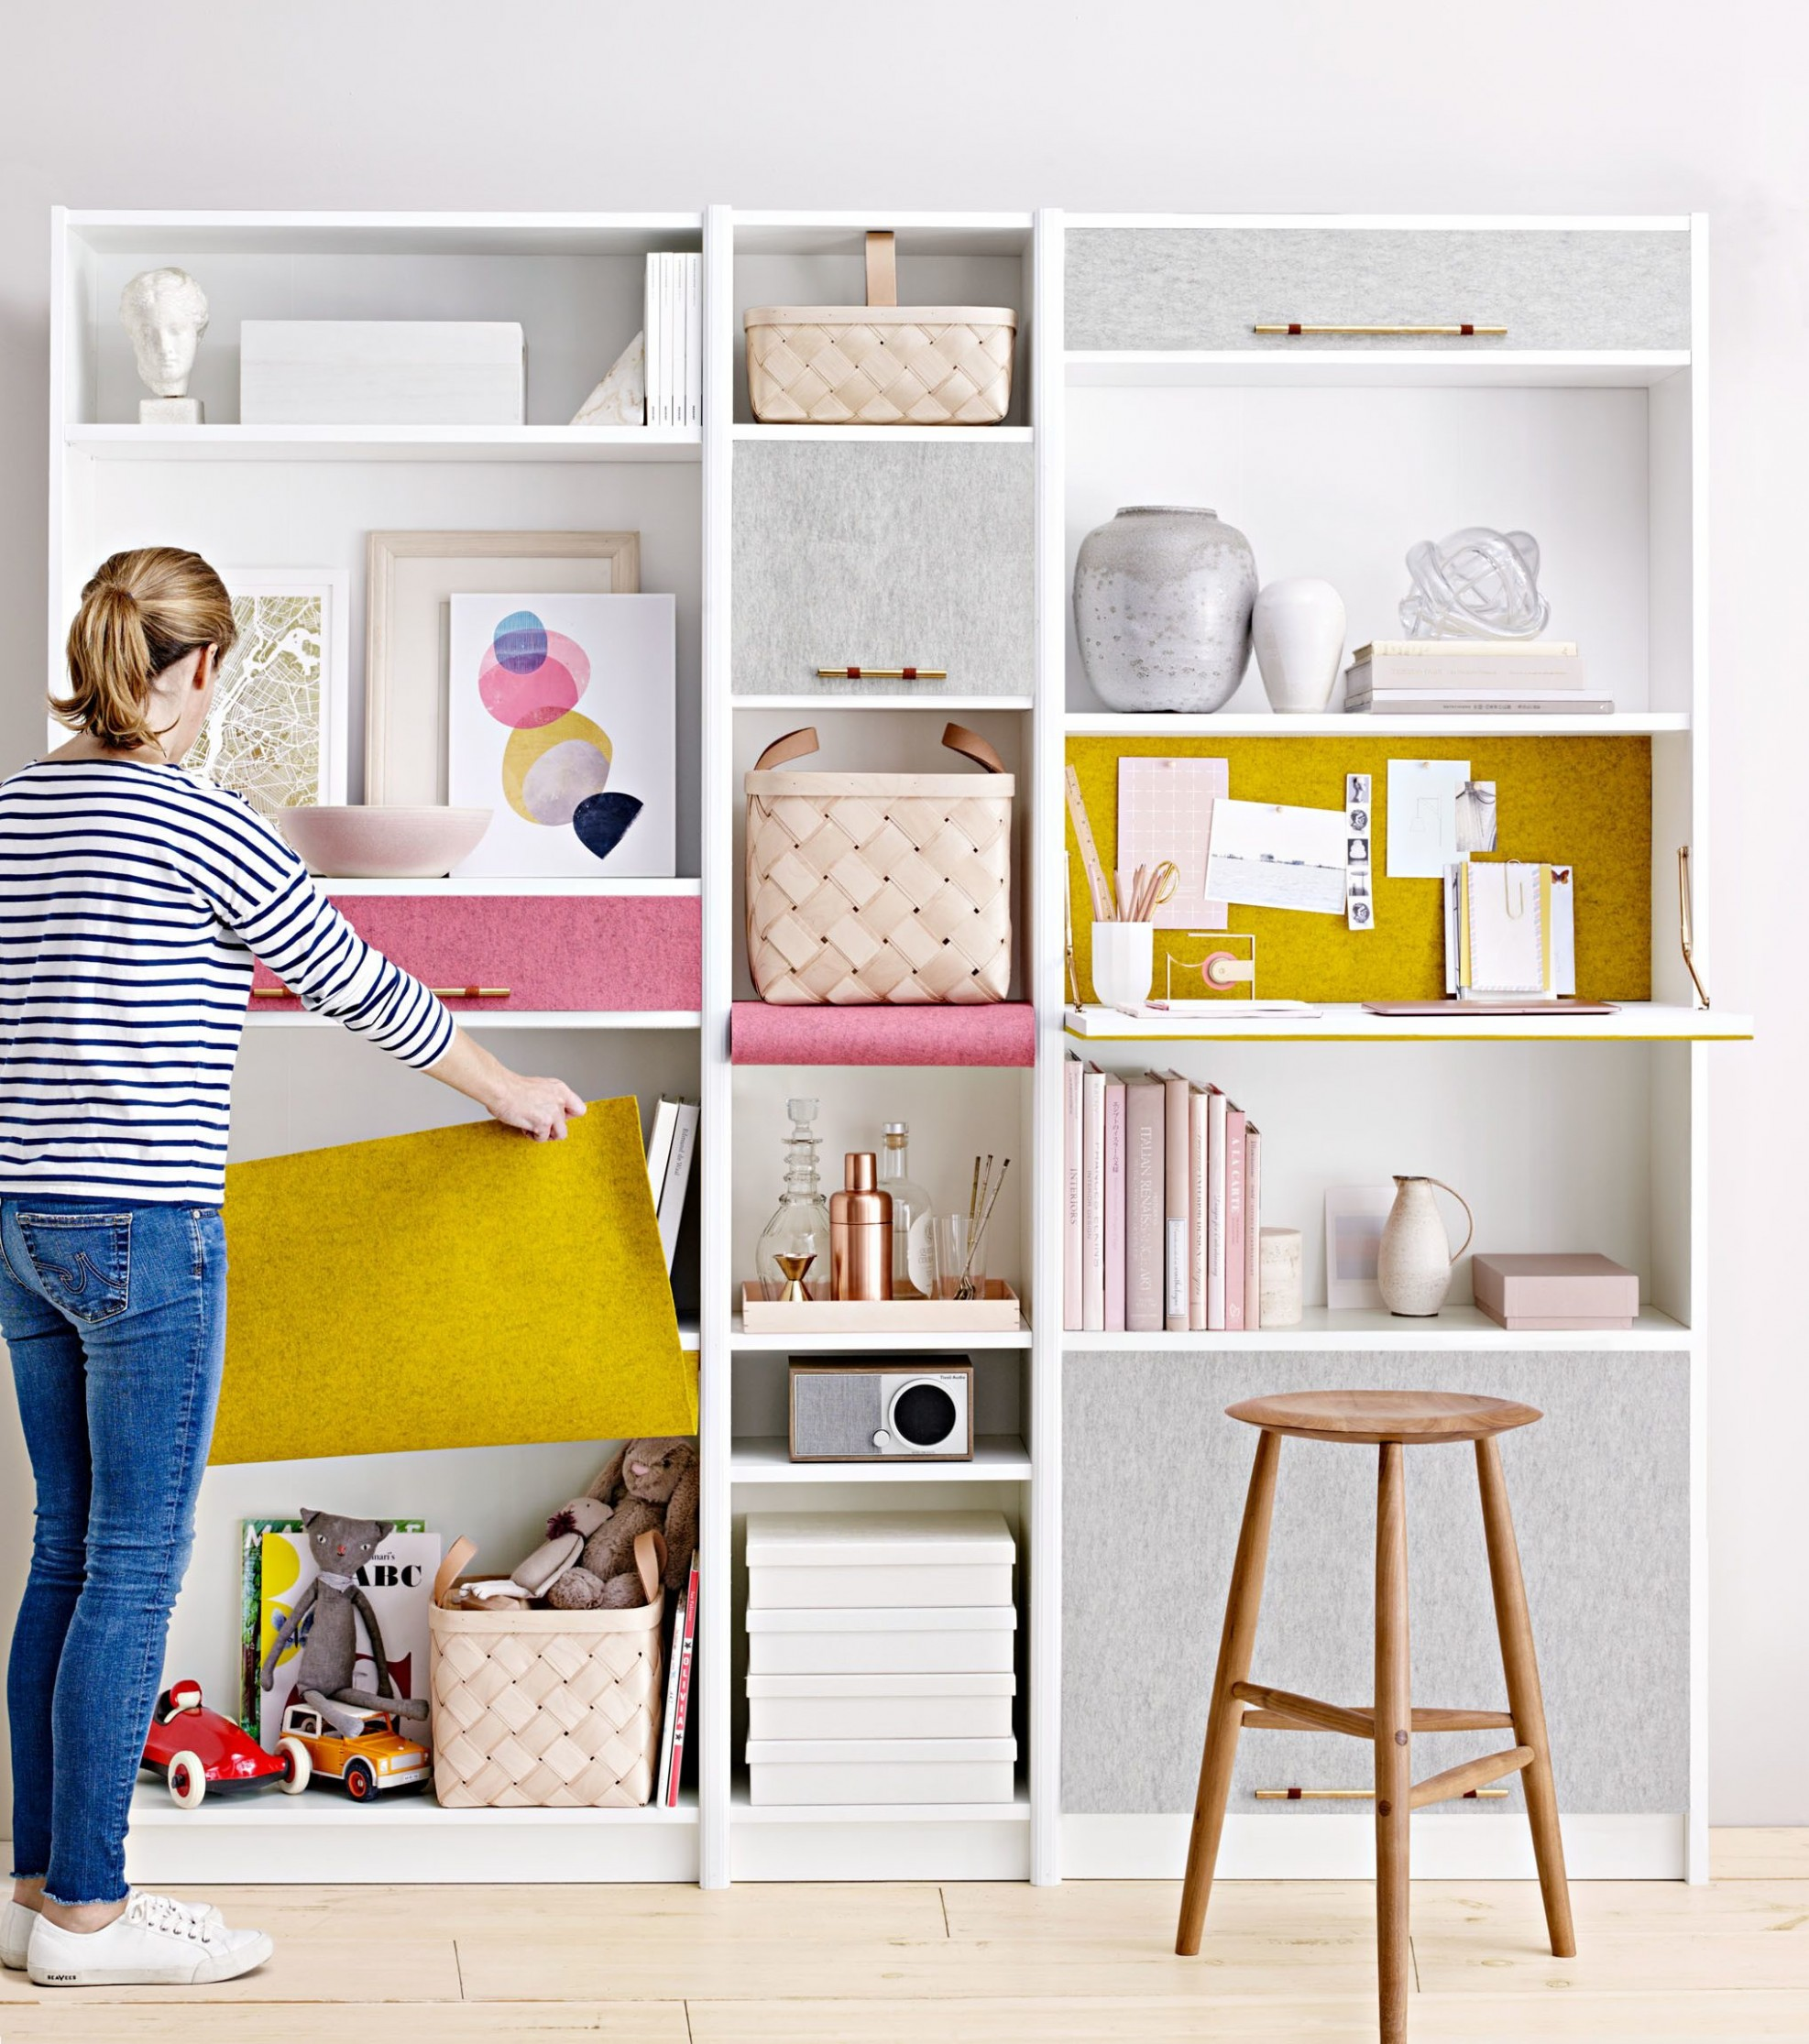 DIY Desks That You Can Build for Your Home Office  Martha Stewart - Home Office Bookshelf Ideas